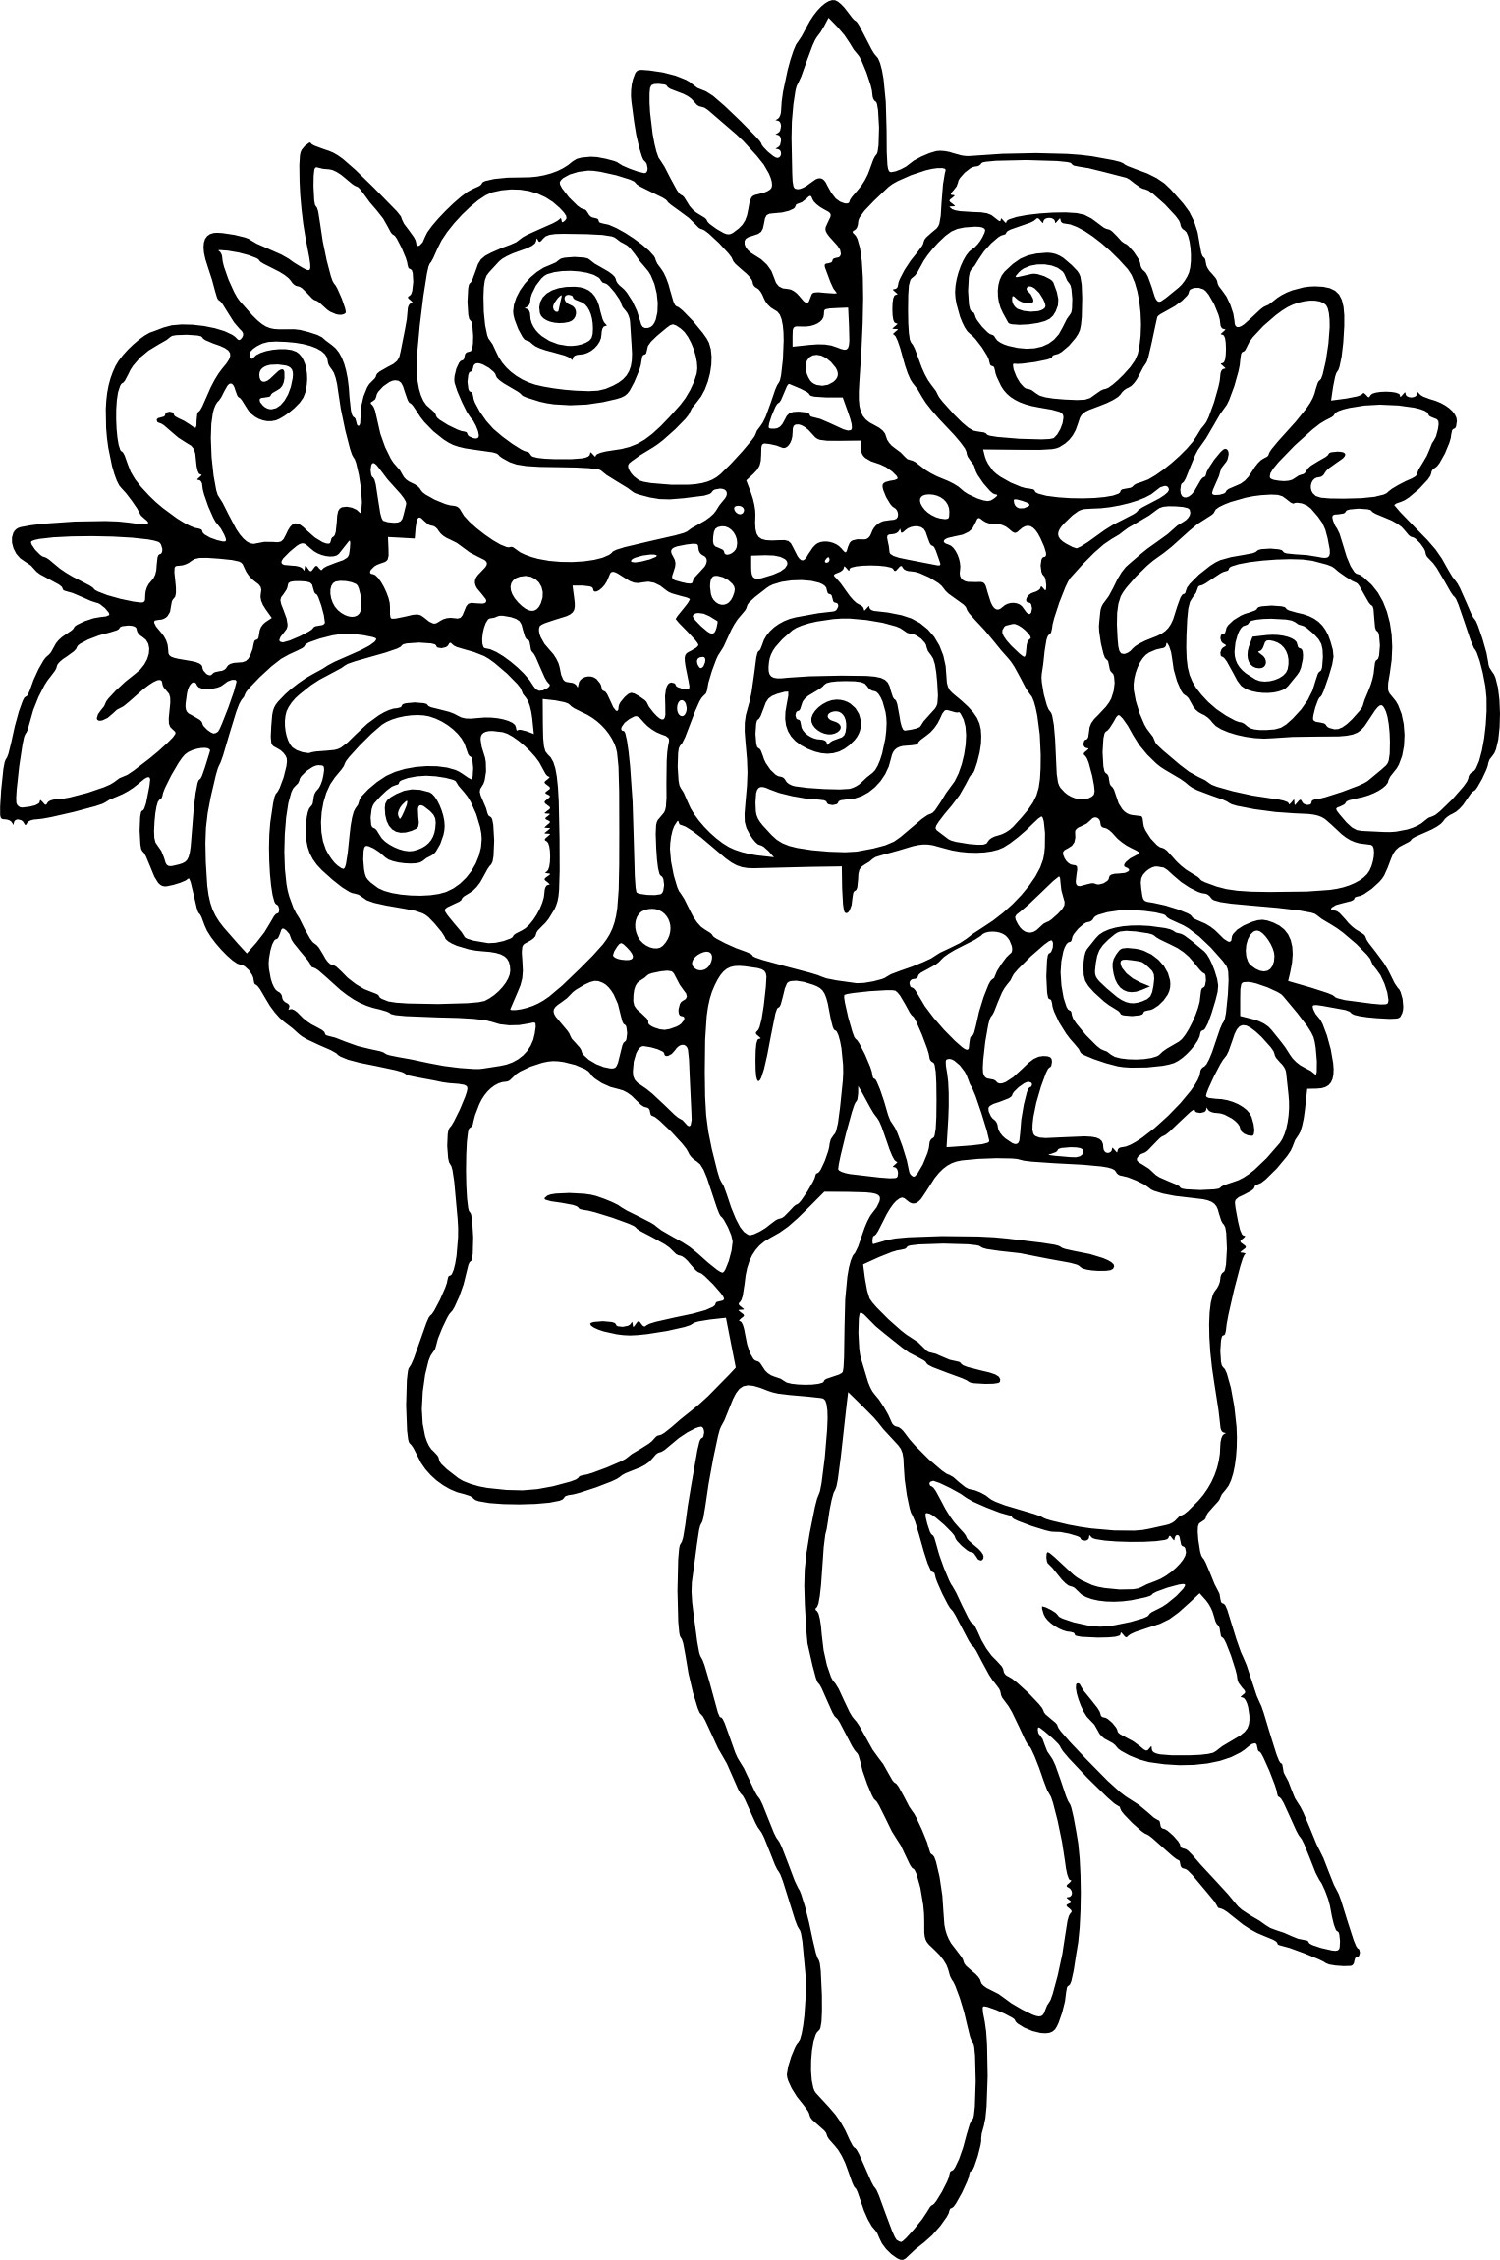 coloring roses rose flower blooming coloring page kids play color roses coloring